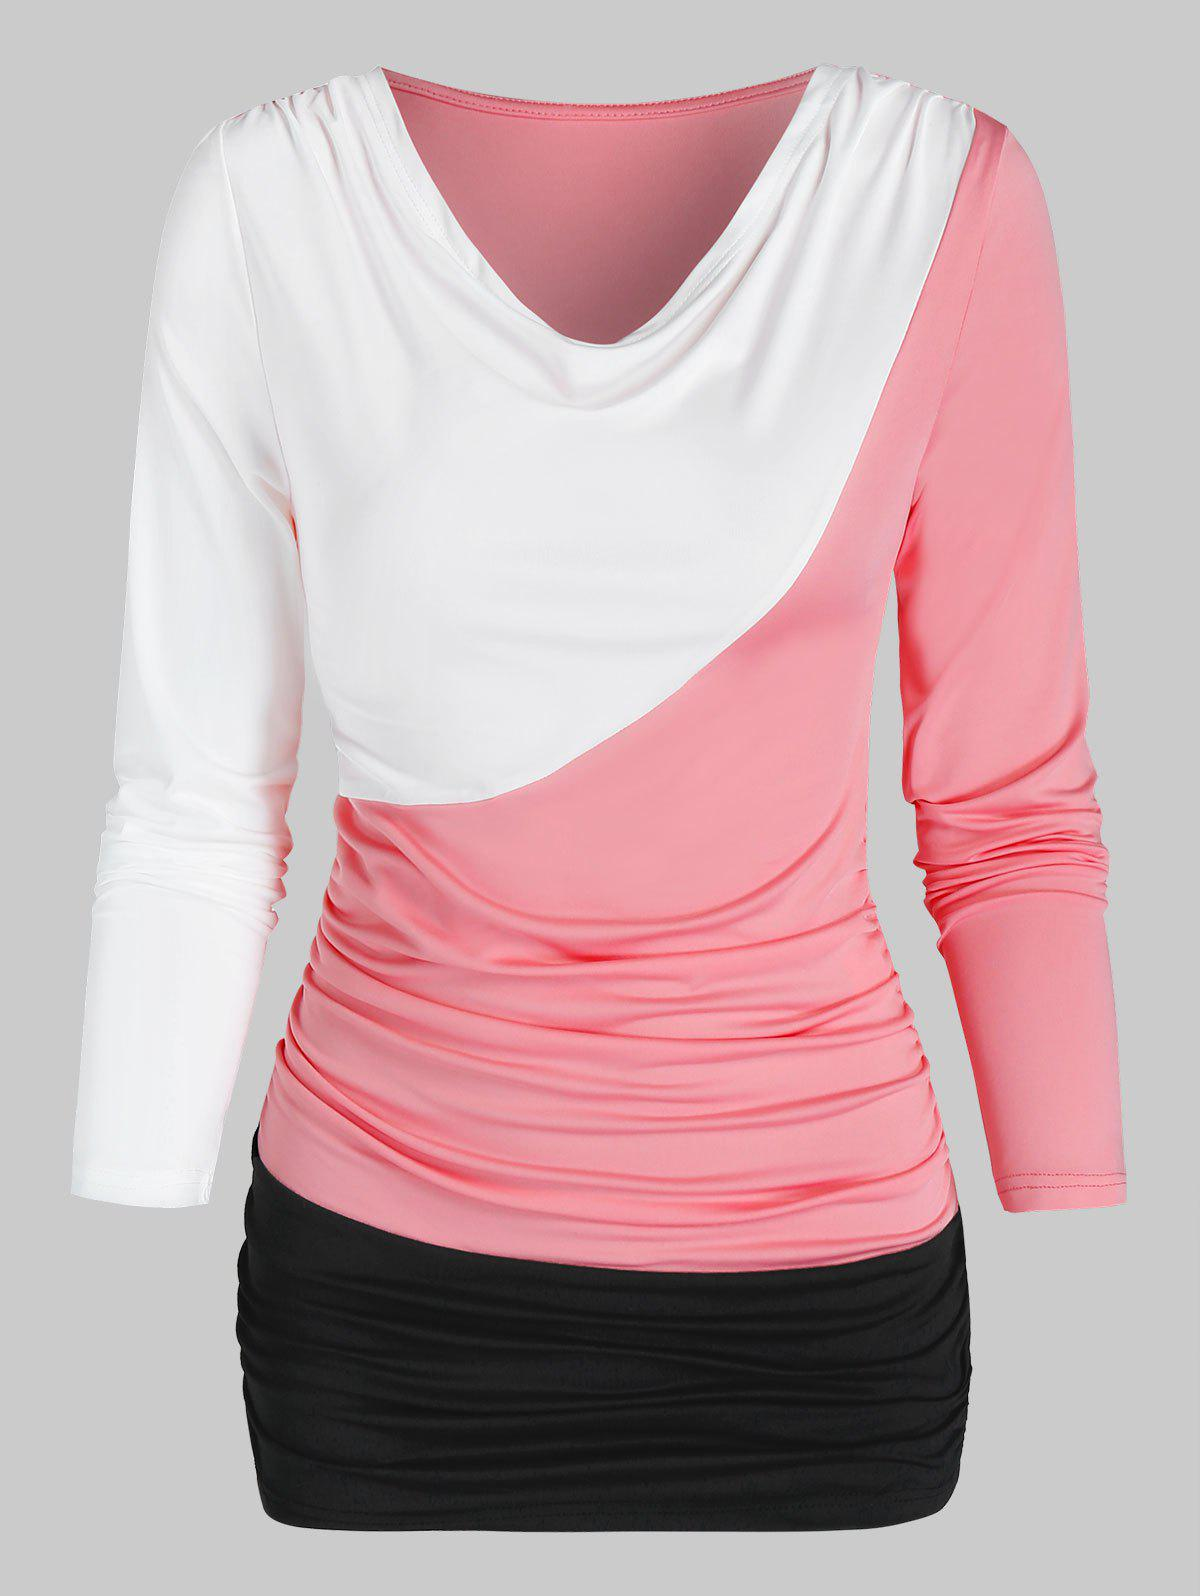 Long Sleeve Contrast Ruched T-shirt - multicolor B 3XL